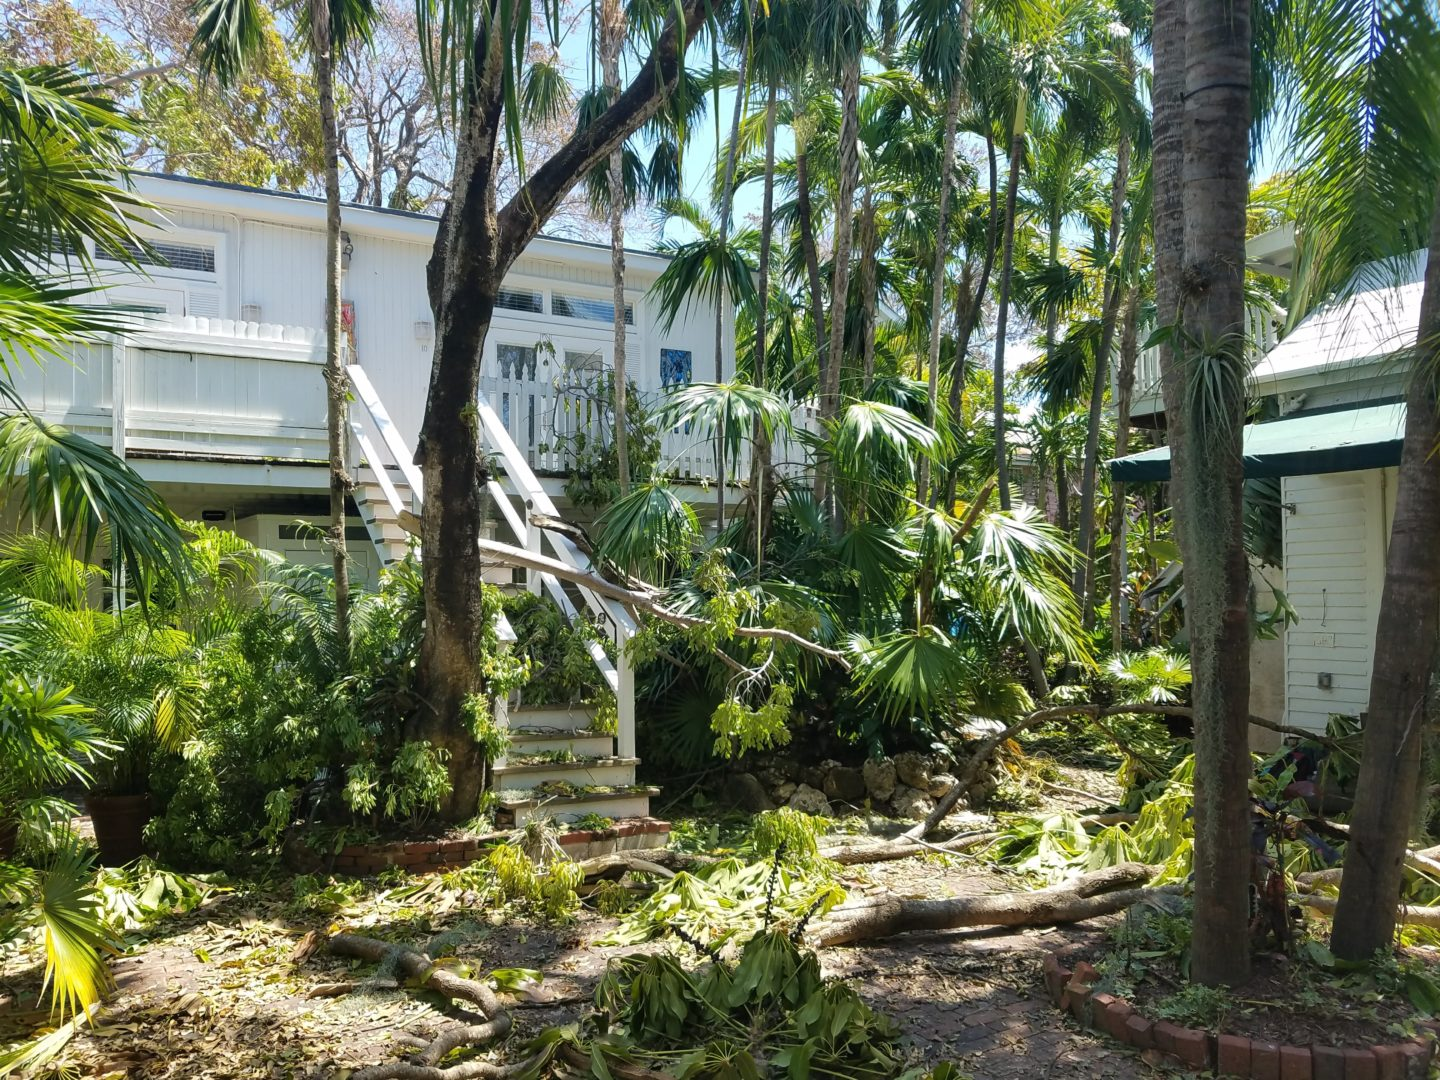 old town manor in key west florida after hurricane irma